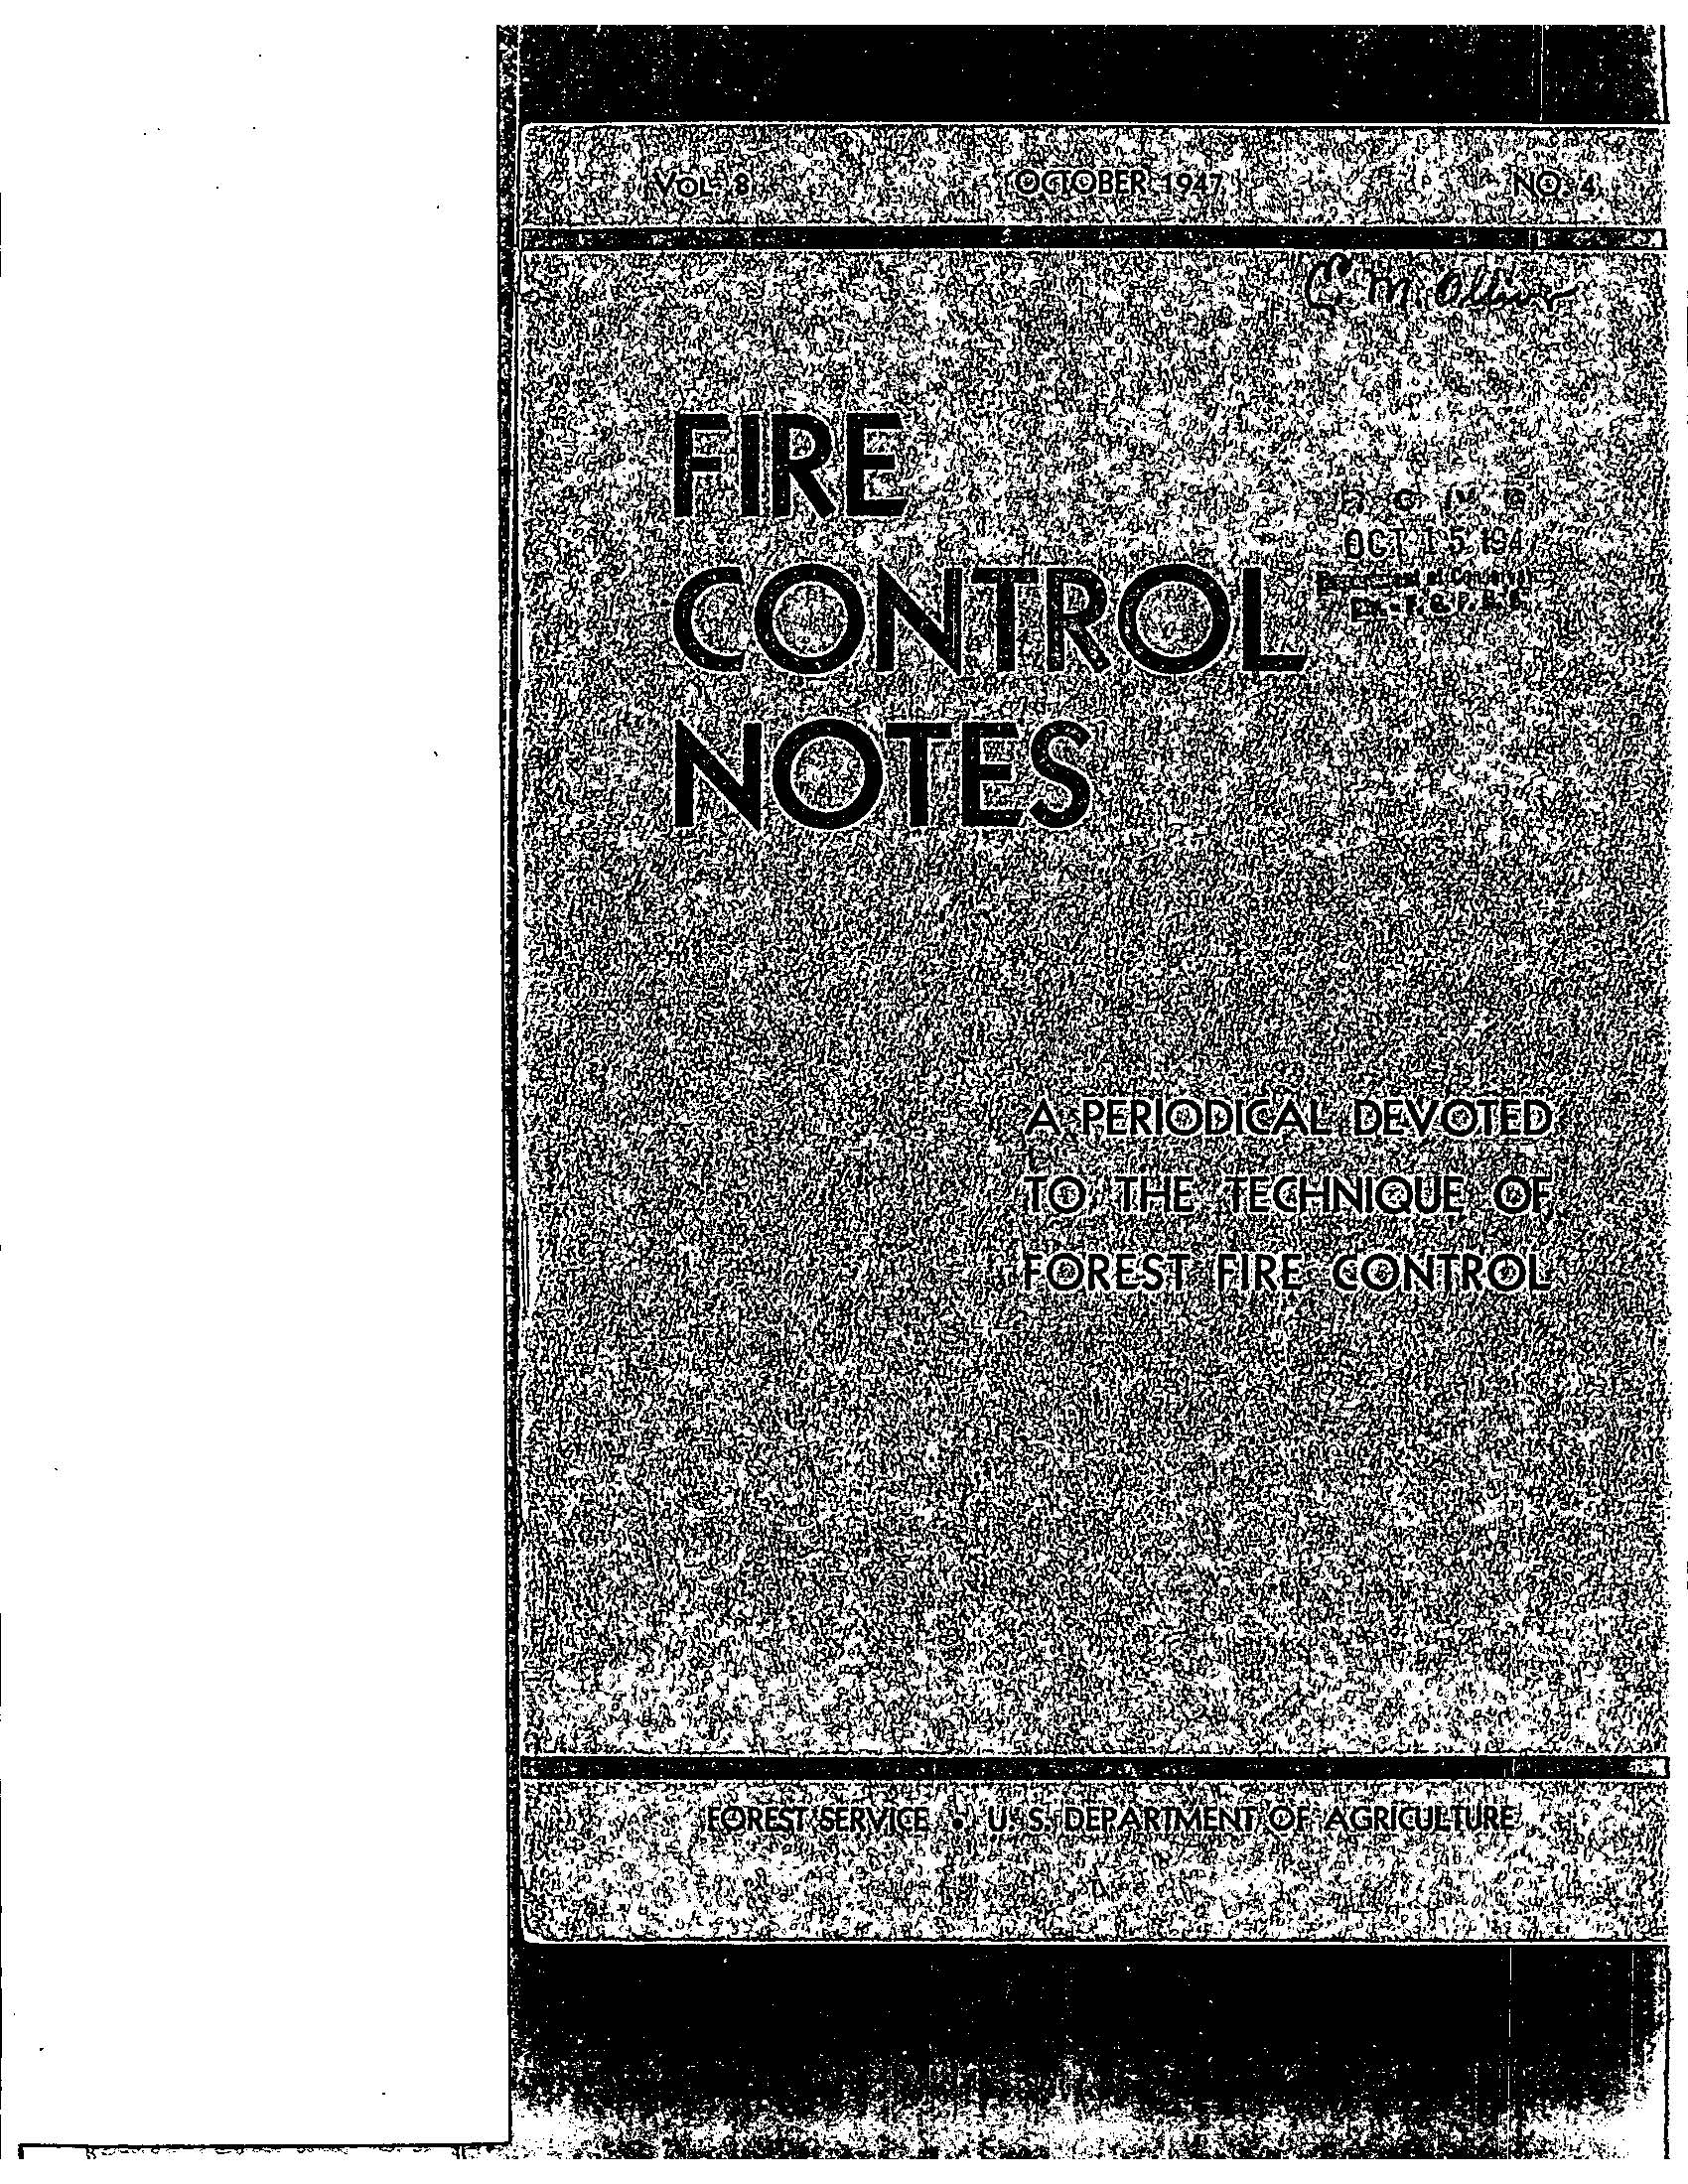 Cover of Fire Management Today Volume 08, Issue 04